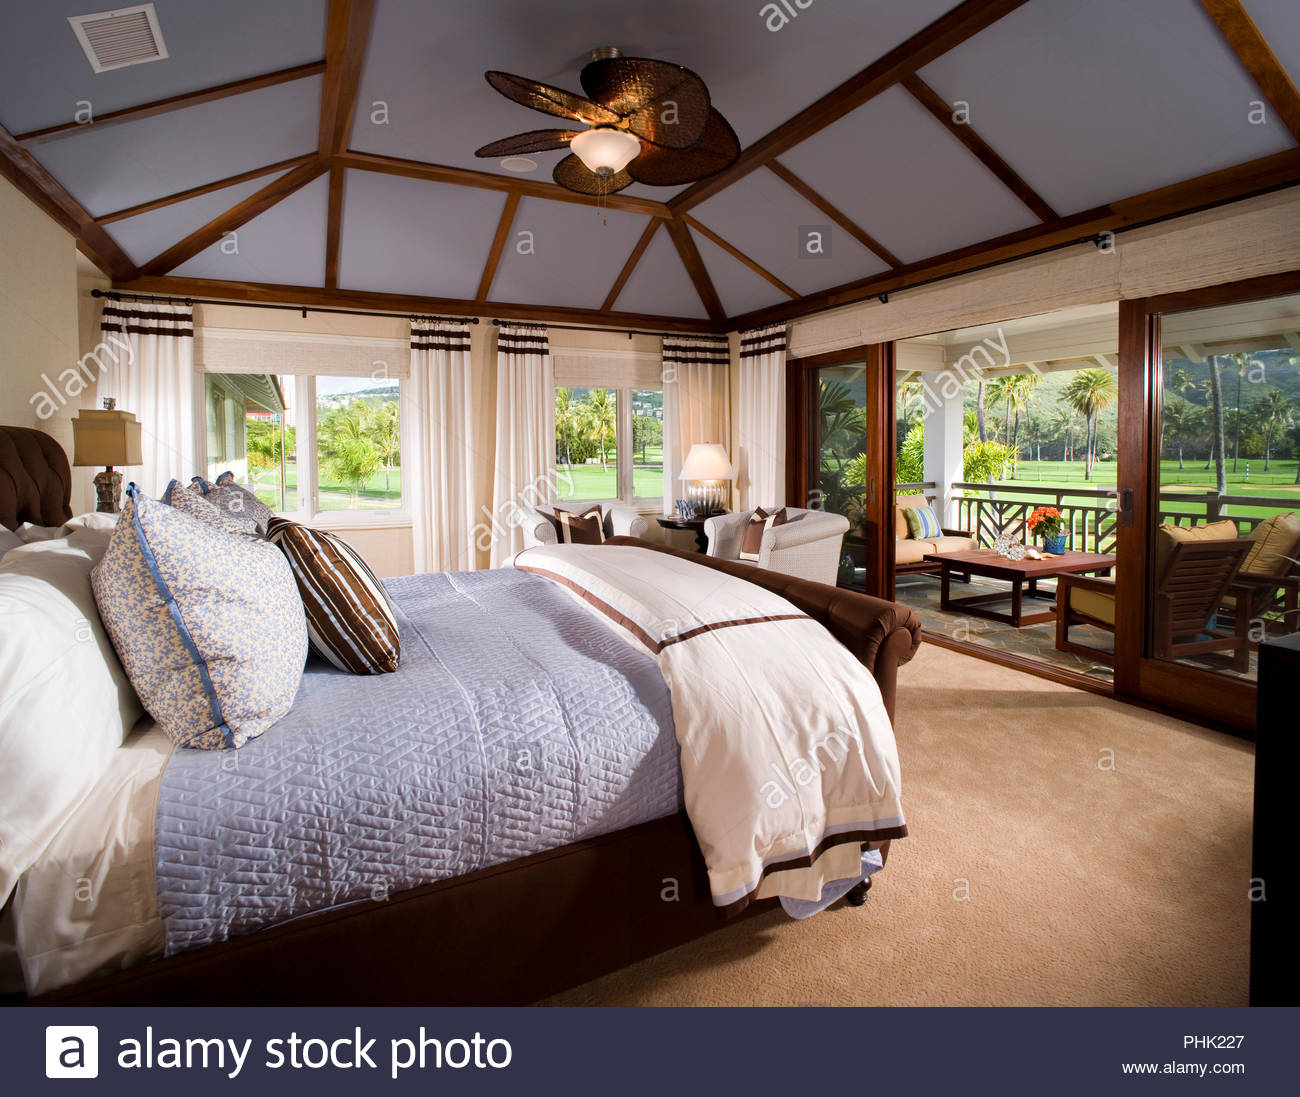 Bedroom with ceiling fan - Stock Image